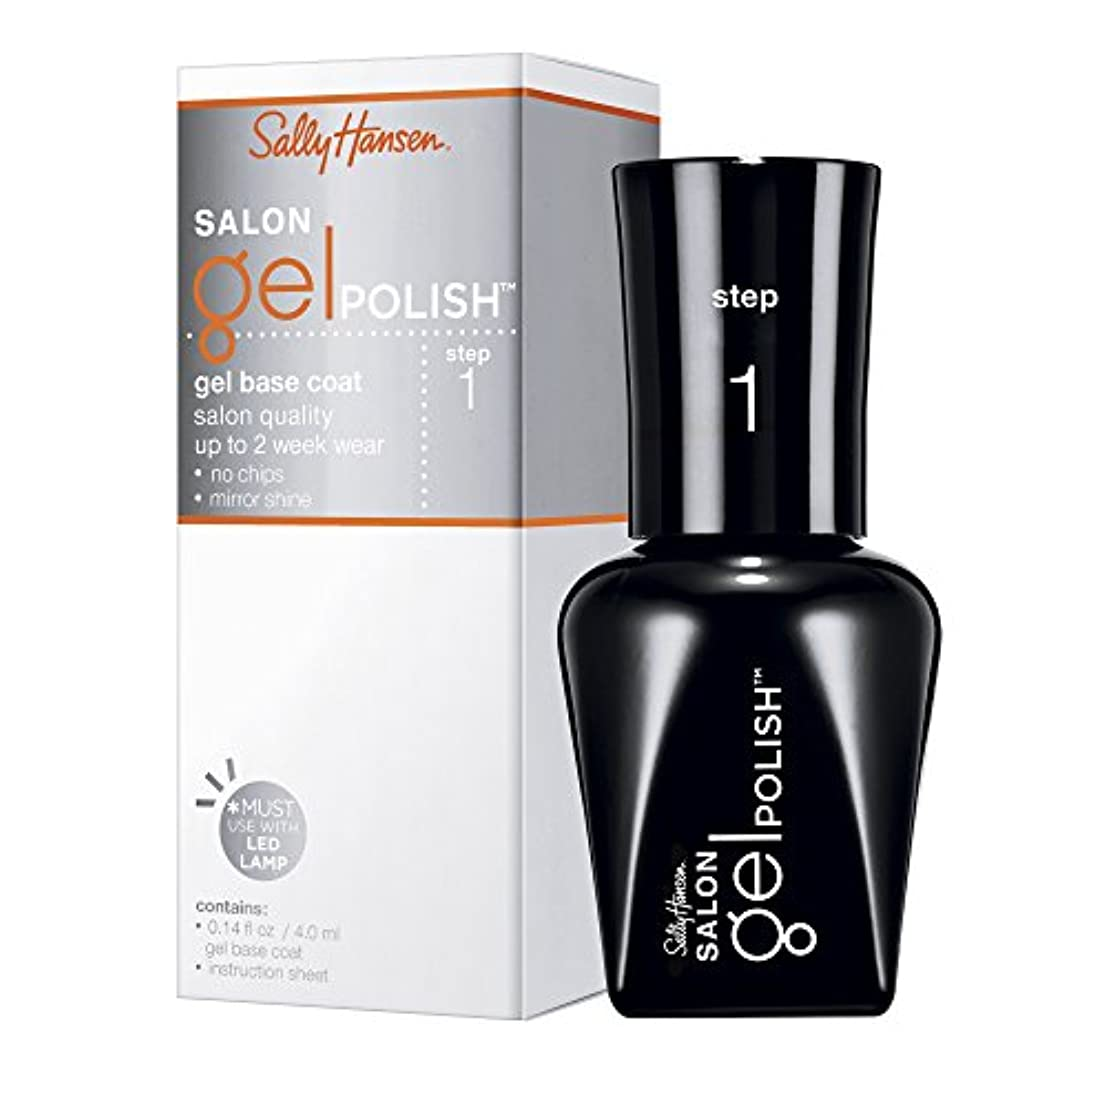 SALLY HANSEN SALON GEL POLISH GEL BASE COAT #01